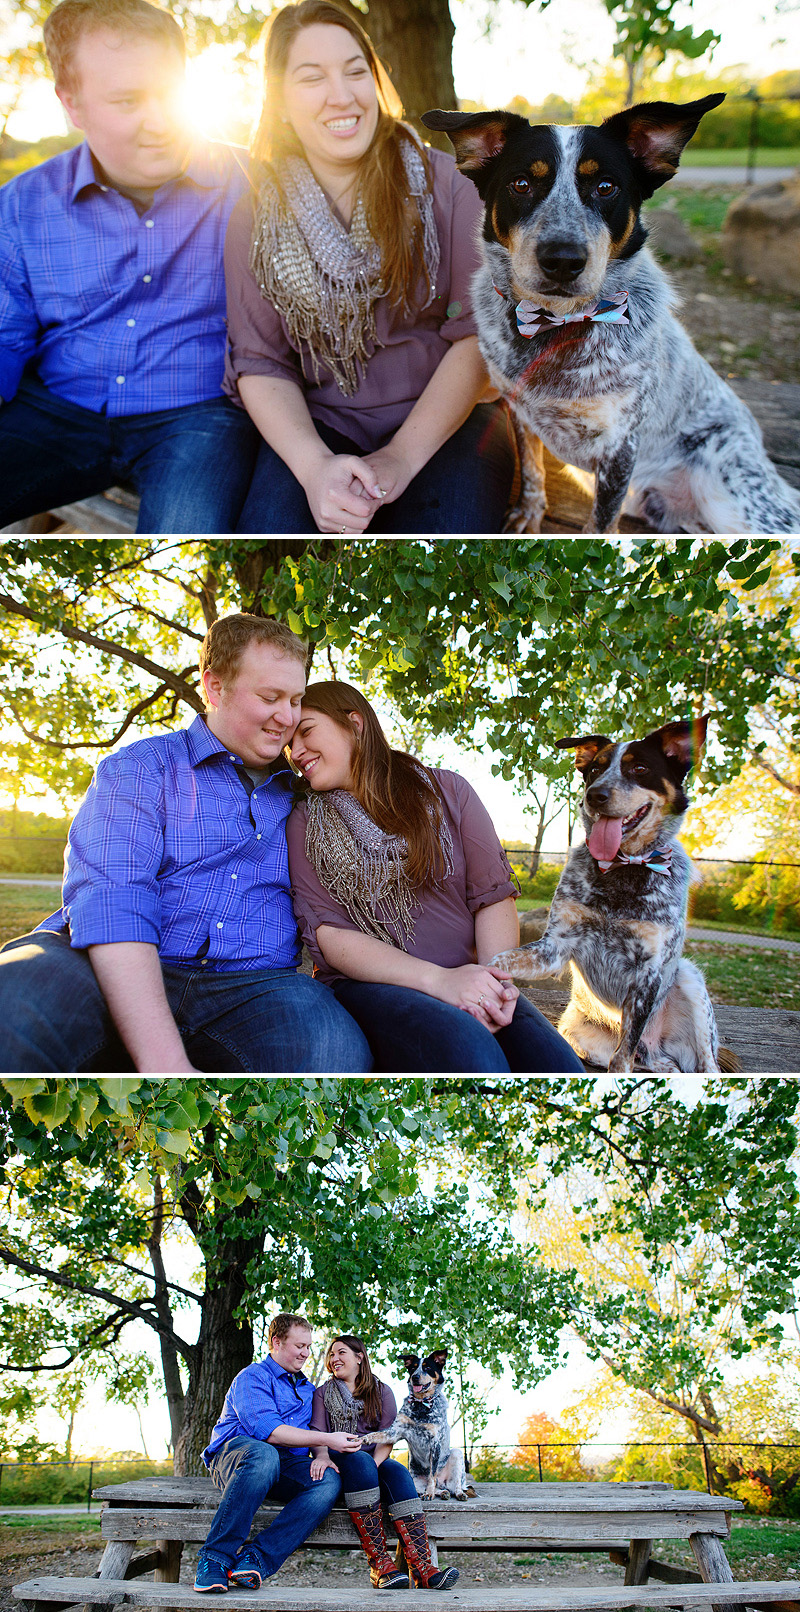 Engagement photo inspiration with their dog.